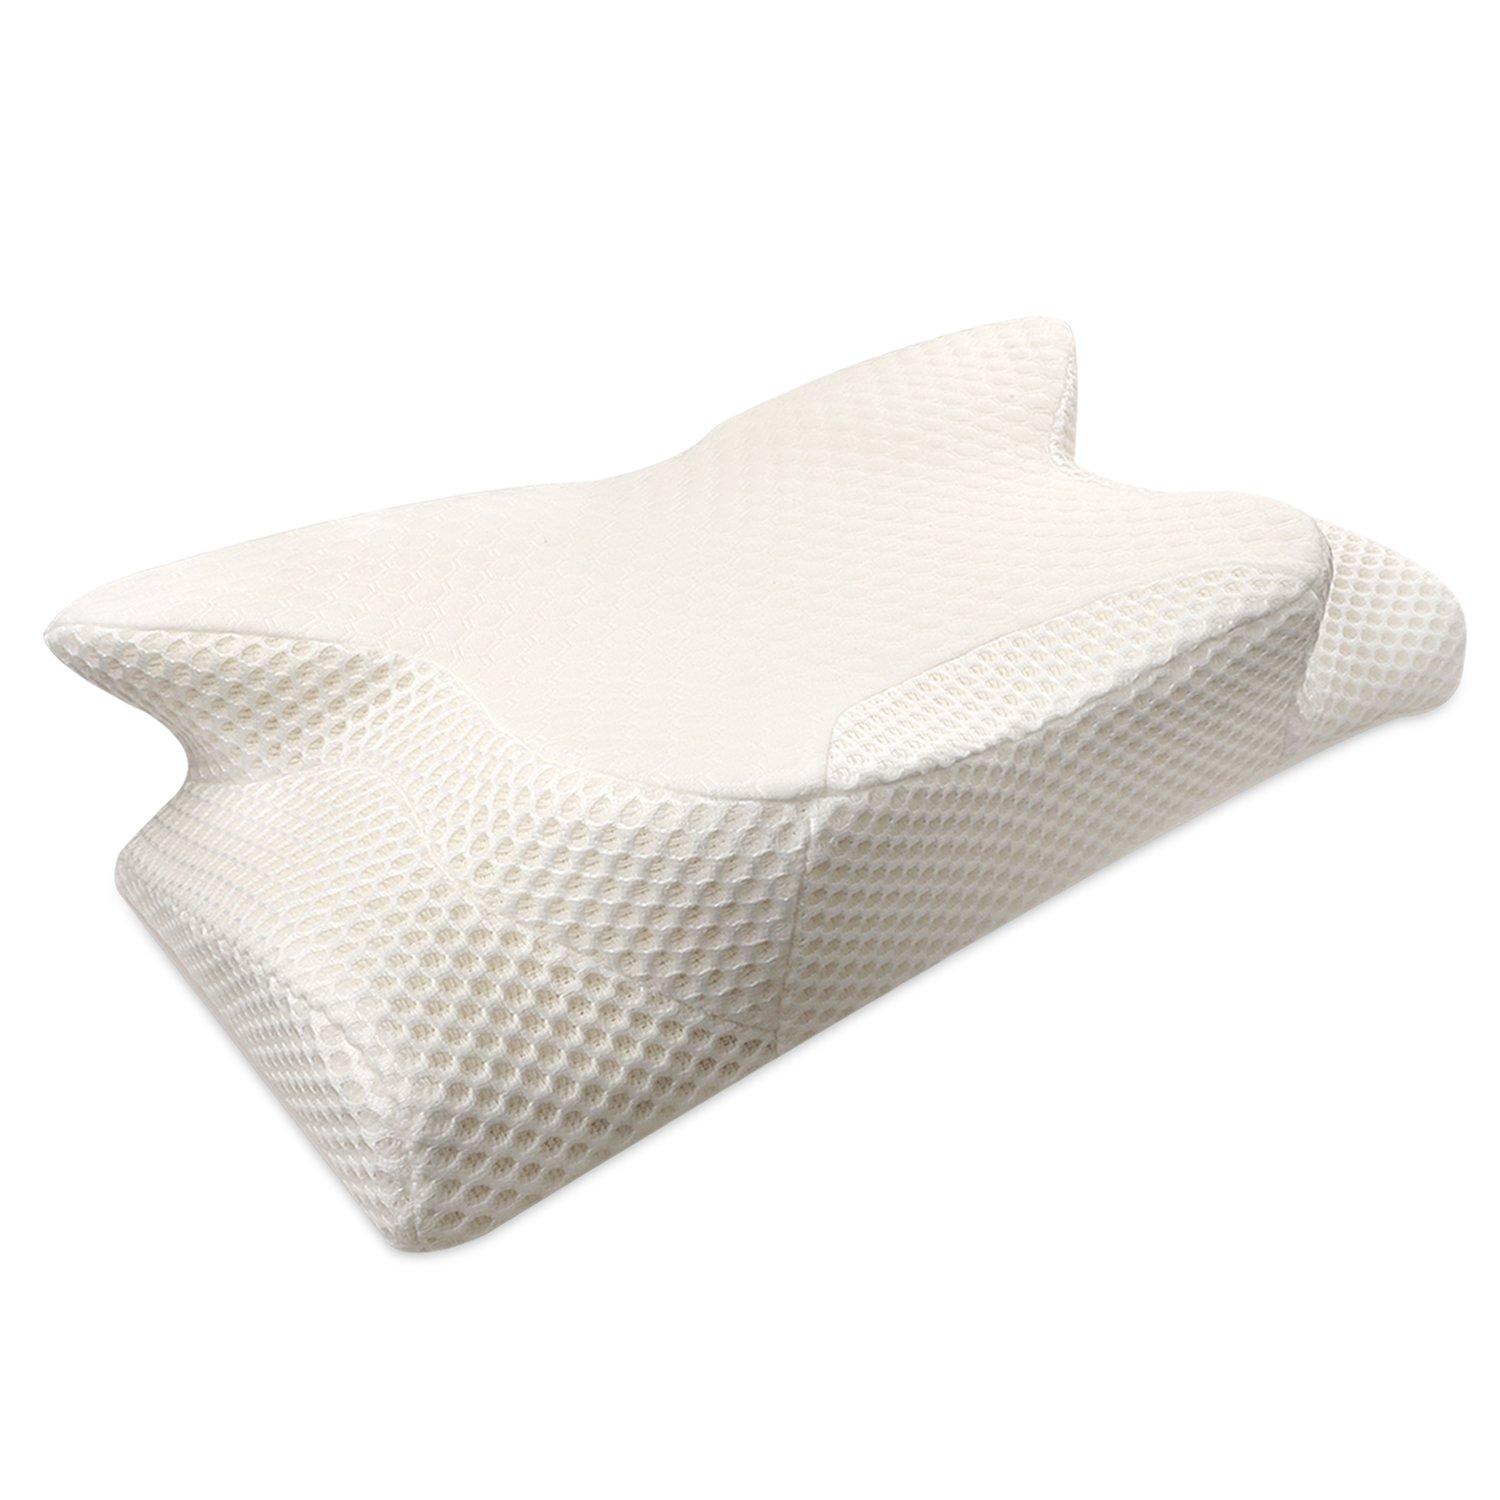 Maxchange Cervical Pillow for Back and Side Sleepers (Coolest Memory Foam Pillow)